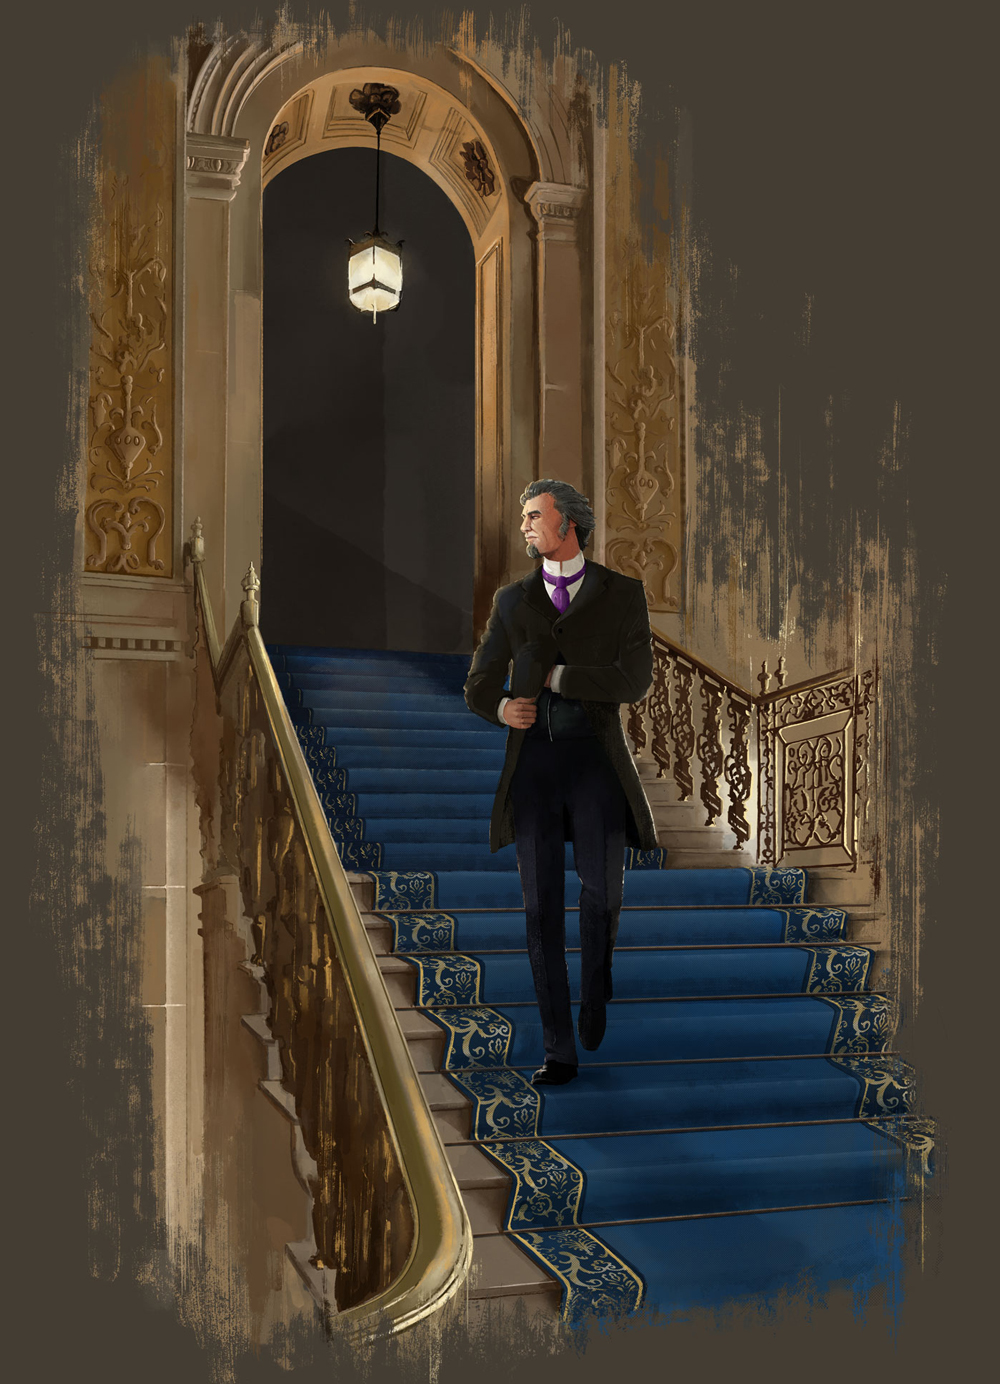 Professor James Moriarty Illustration